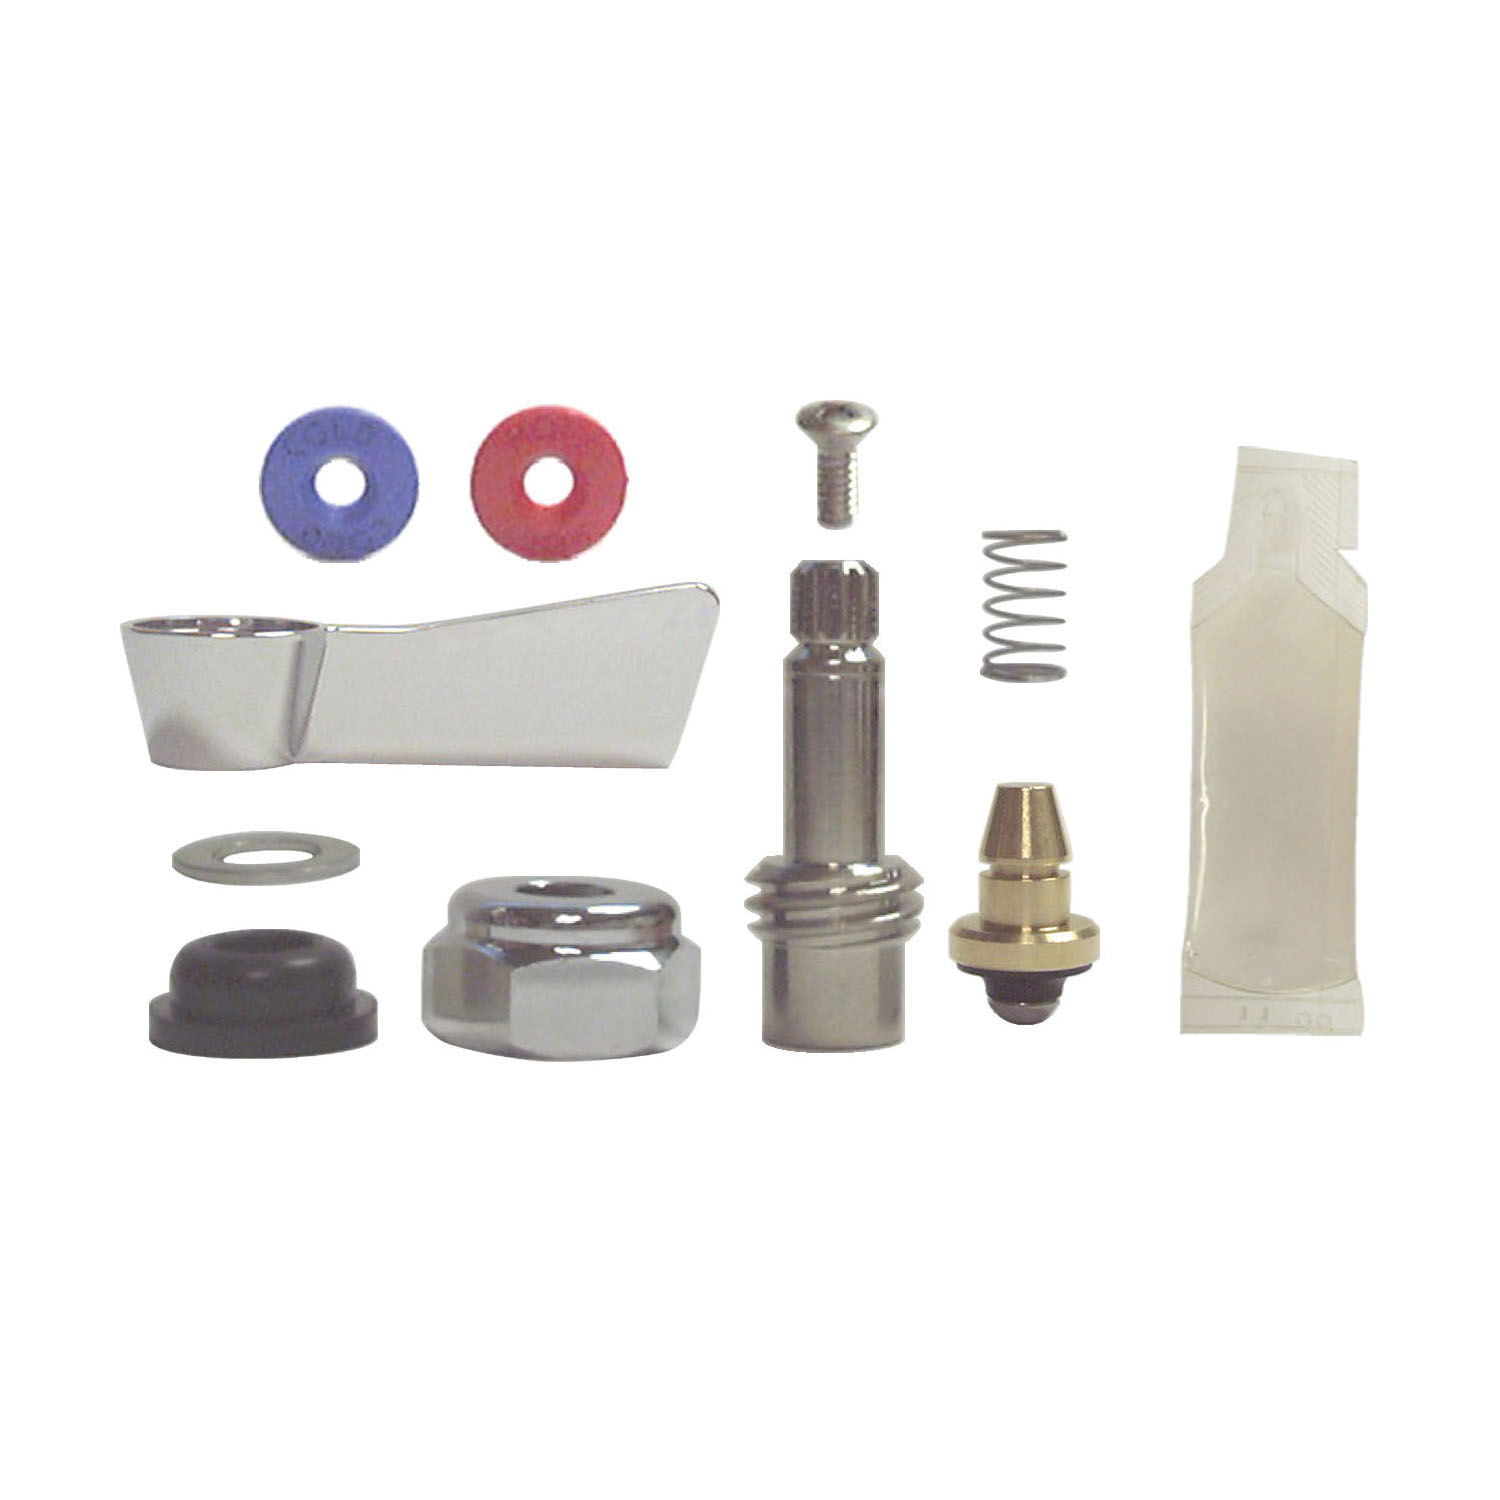 Fisher 54526 Faucet Stem Repair Kit, For Use With Model 53740/53759/53767 4 in Deck Mount Kitchen Faucets, Stainless Steel